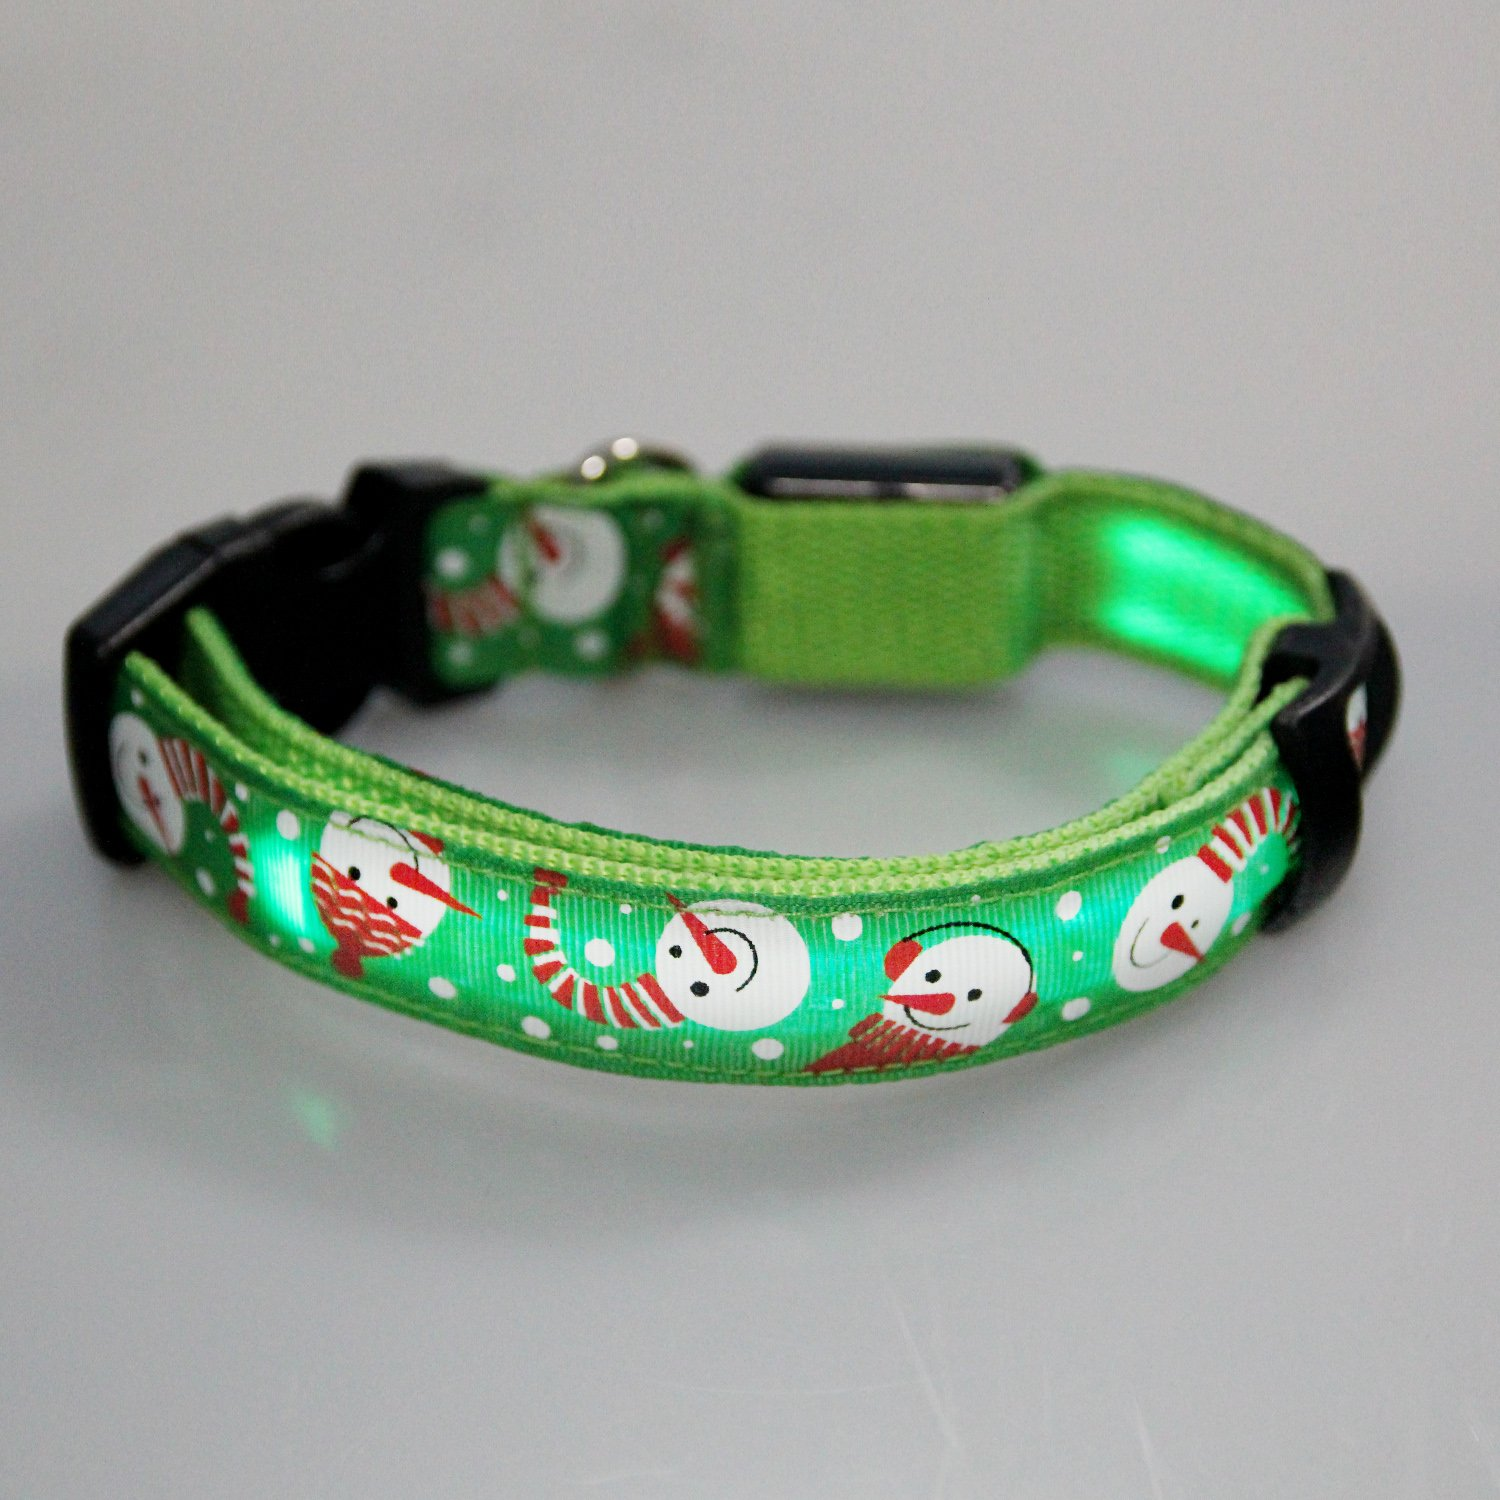 Itery LED Dog Pet Collars Flashing Light up Pets Collar Size Adjustable Christmas Snowman Pattern (Green Snowman)